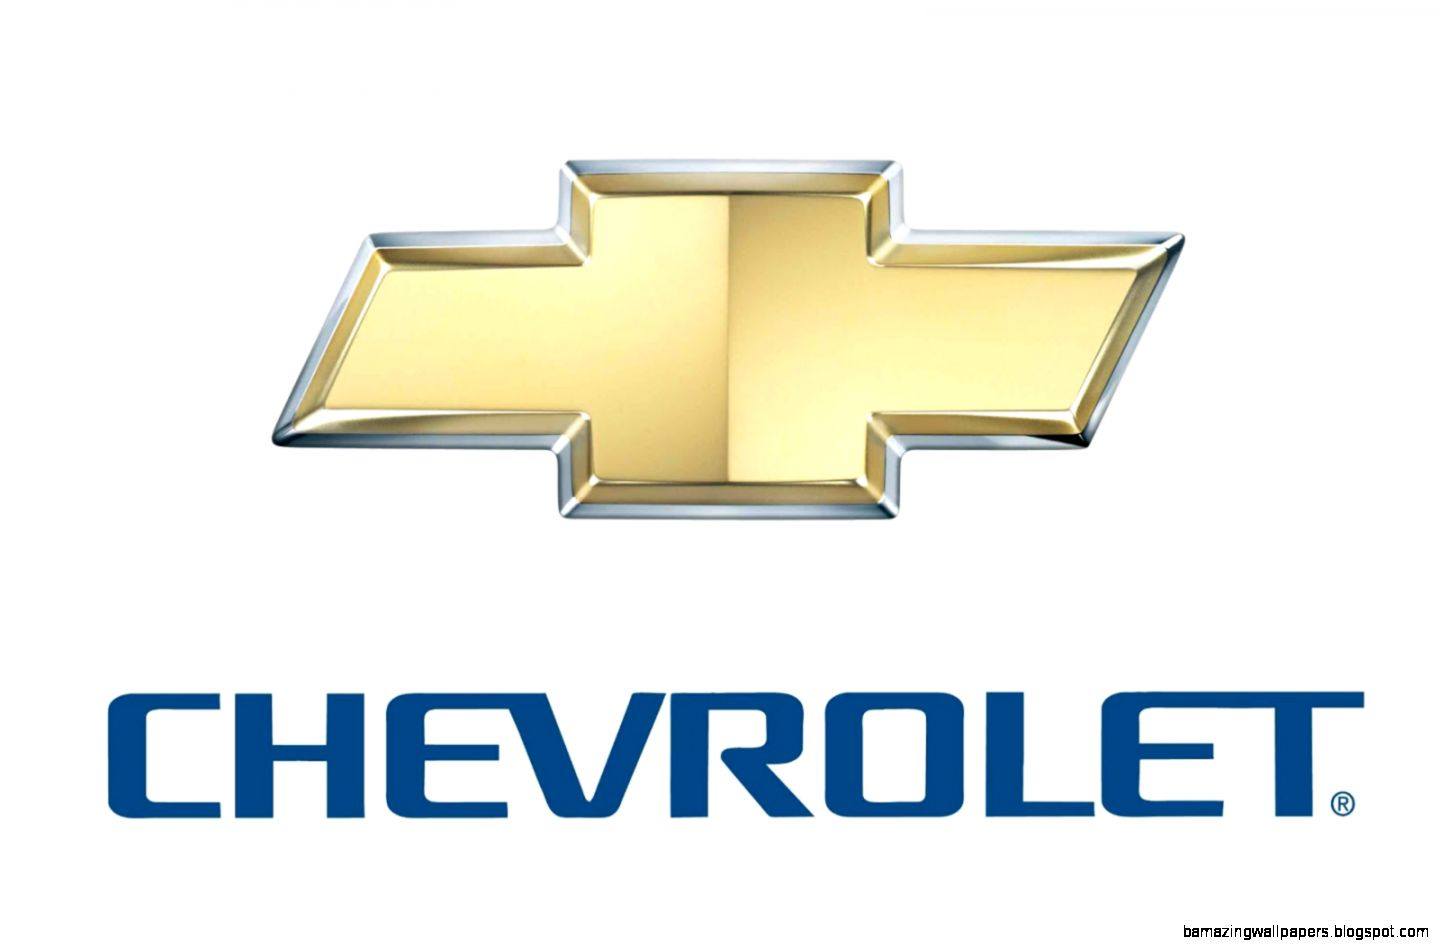 chevrolet logo amazing wallpapers